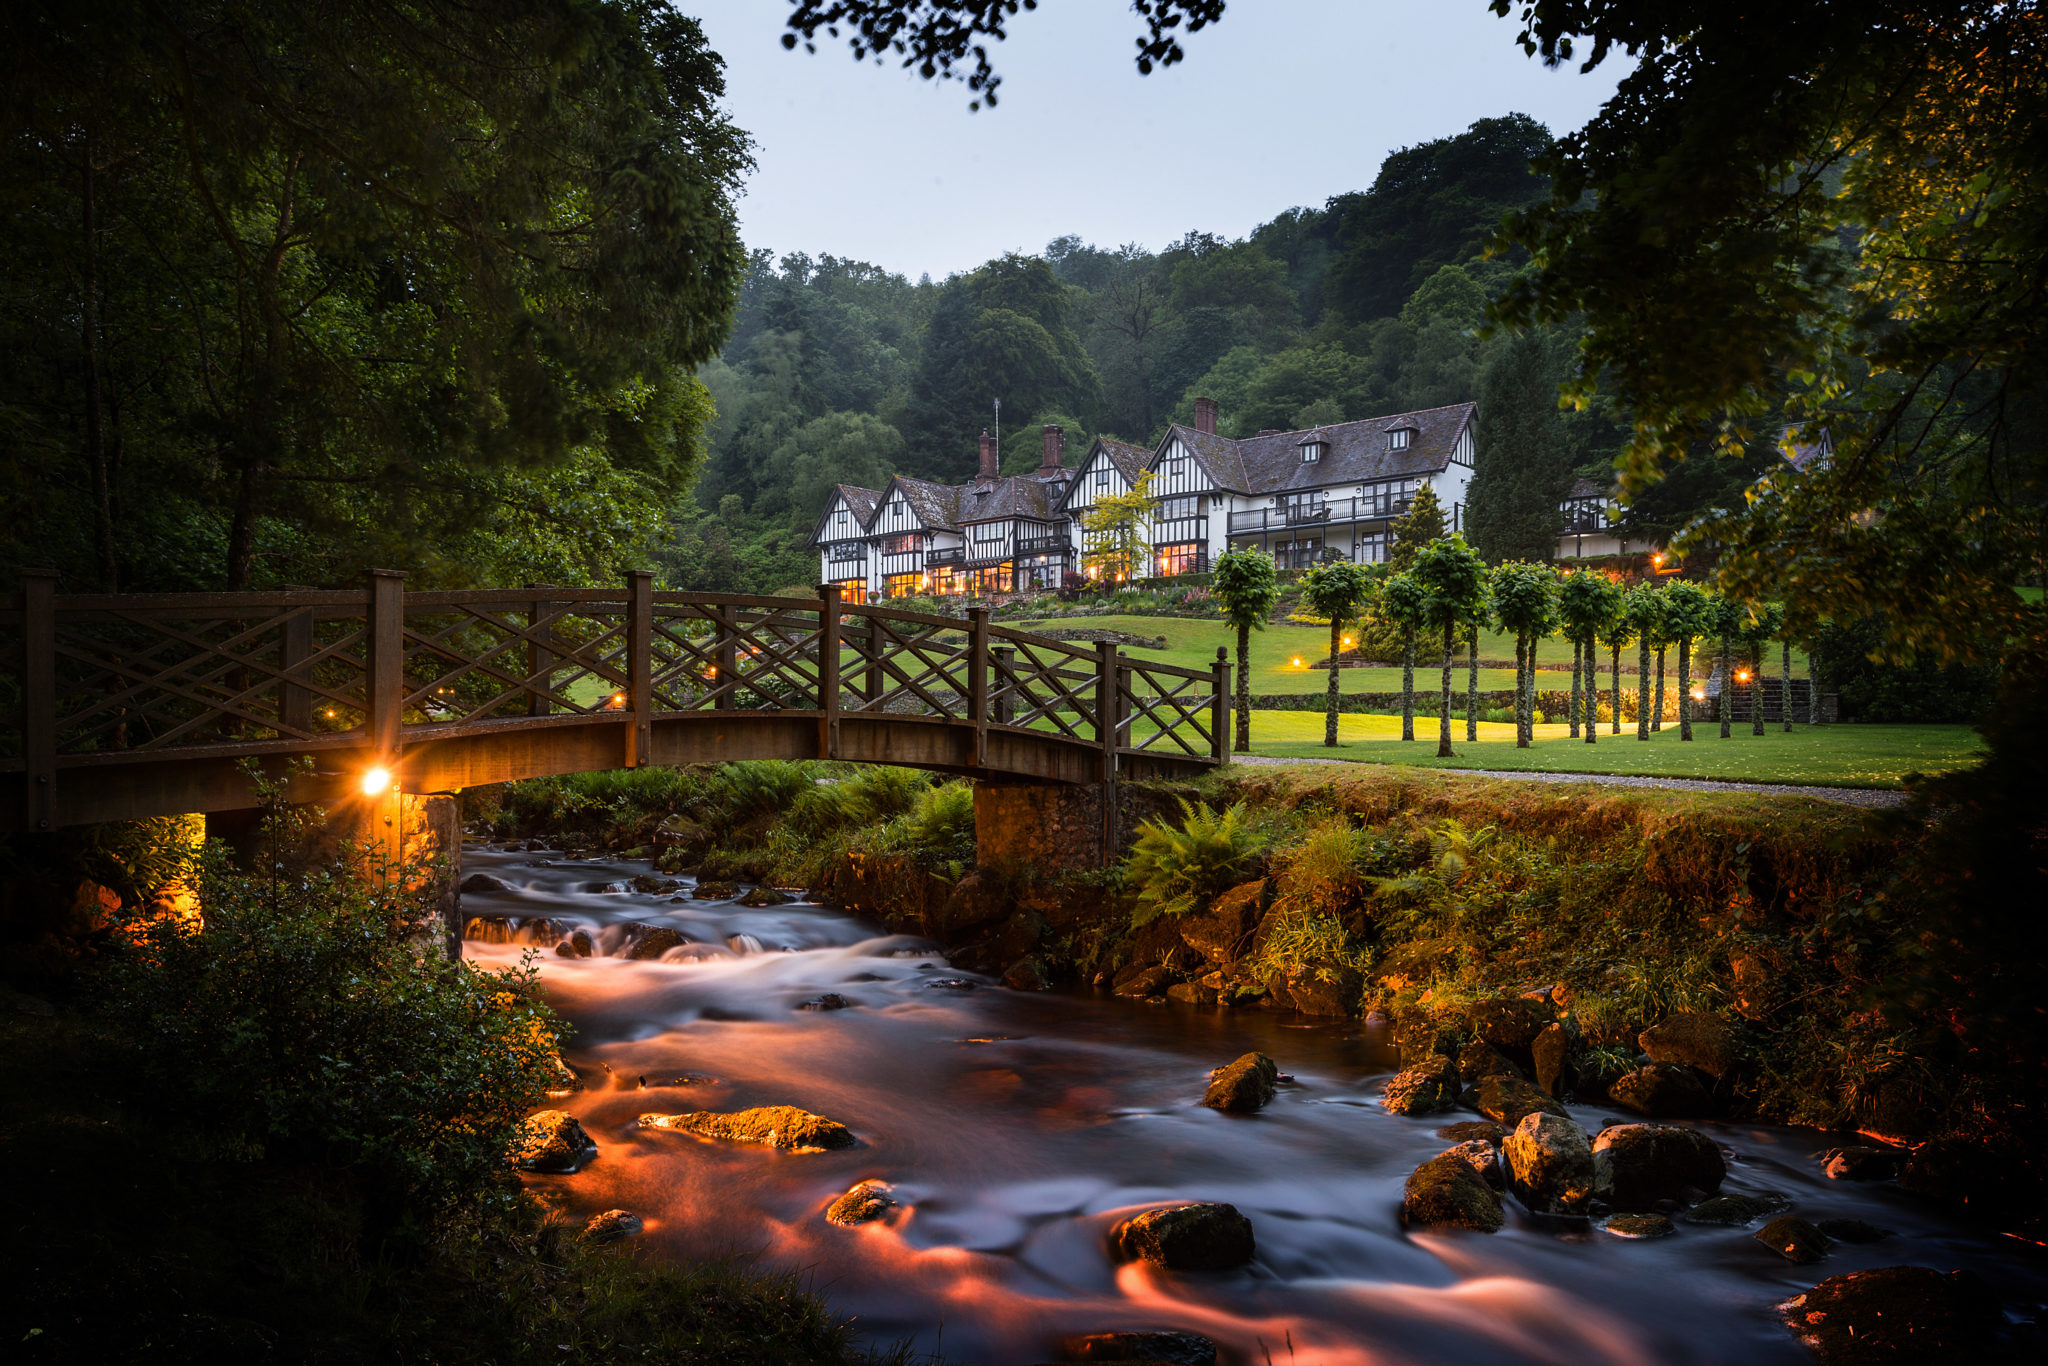 Gidleigh Park and Michael Caines